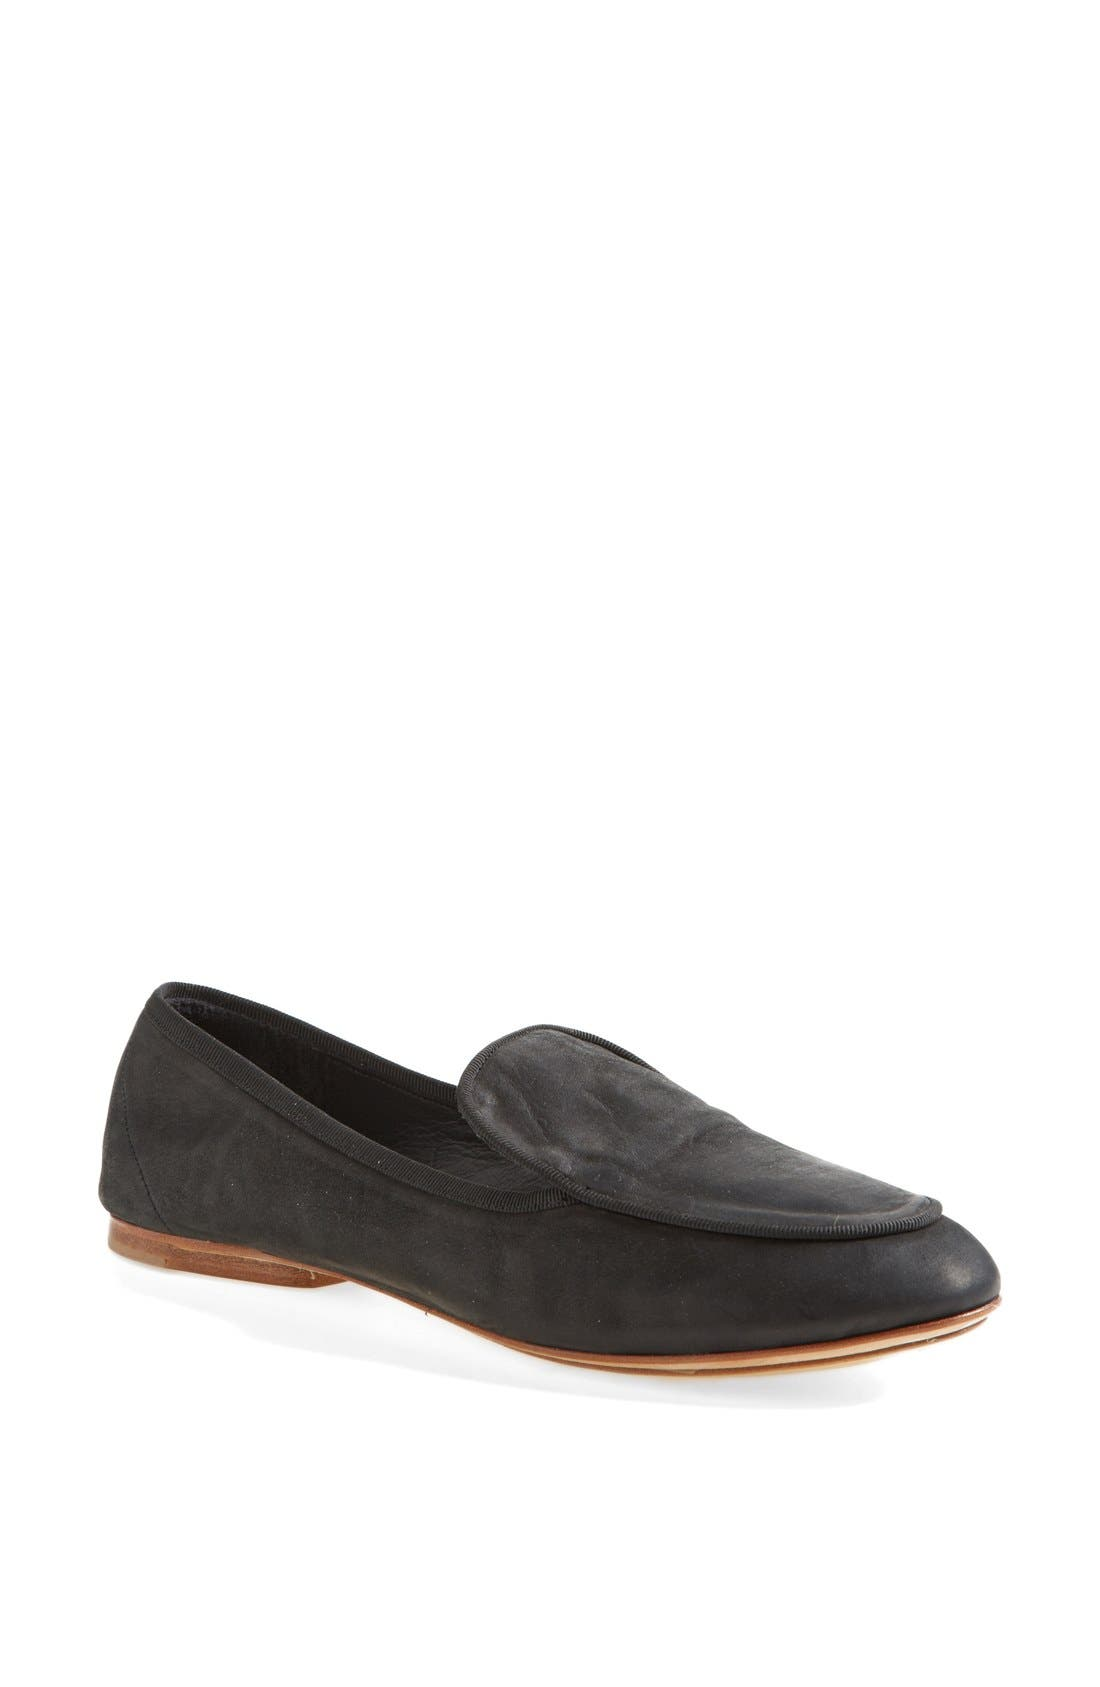 Alternate Image 1 Selected - rag & bone 'Beeman' Loafer Flat